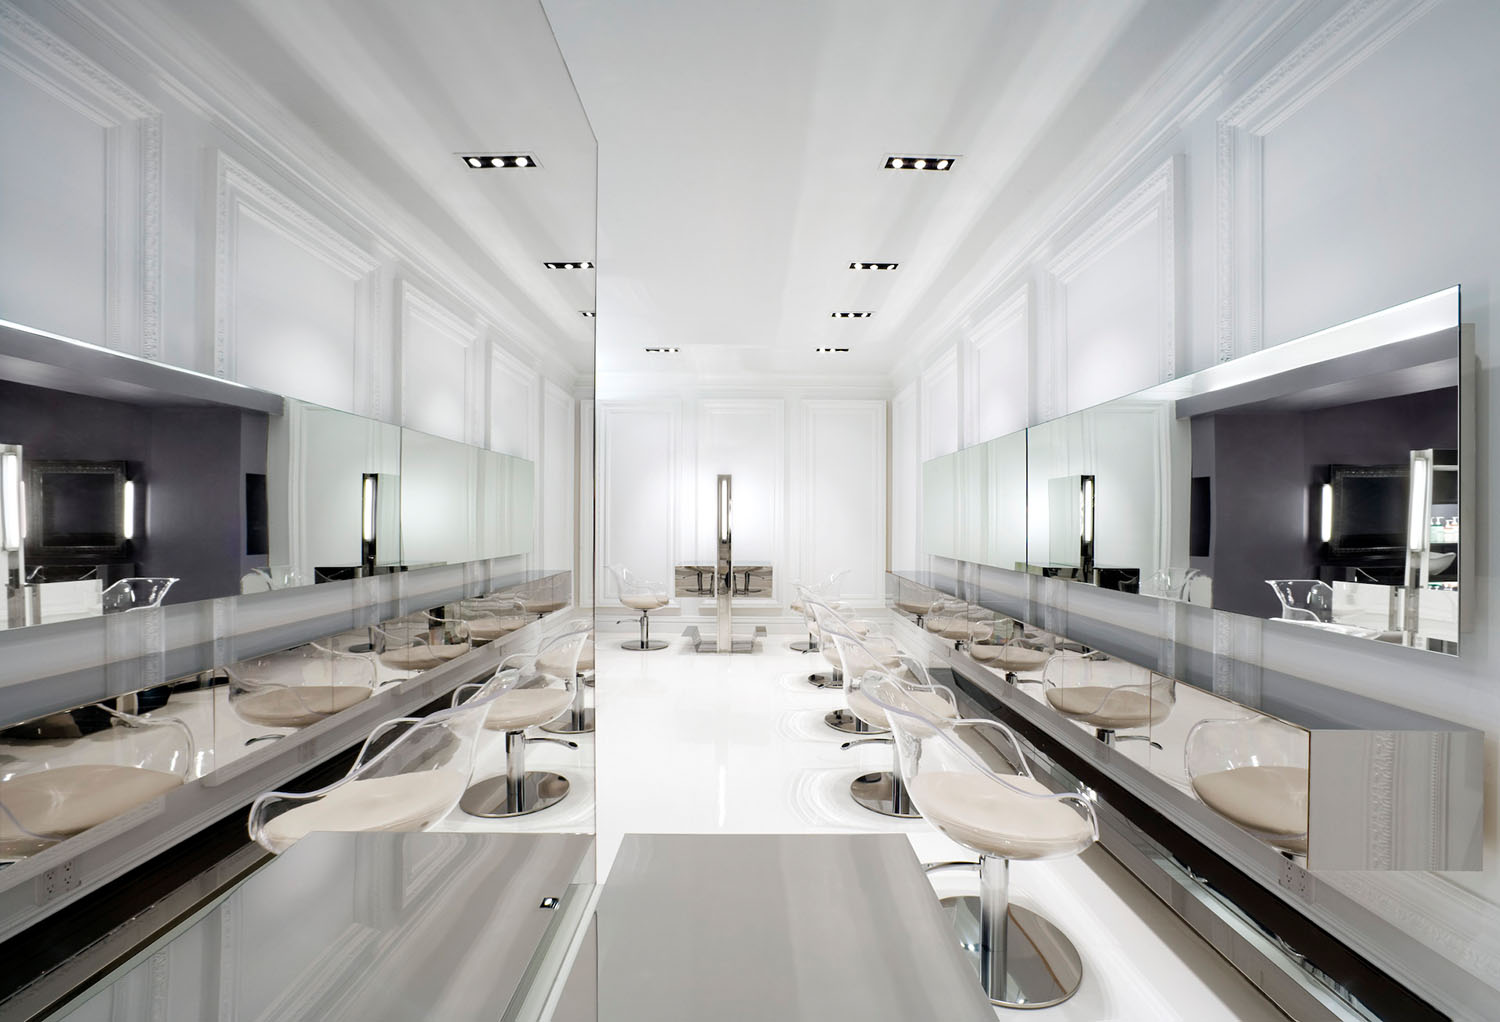 Bright white room with chairs and mirrors